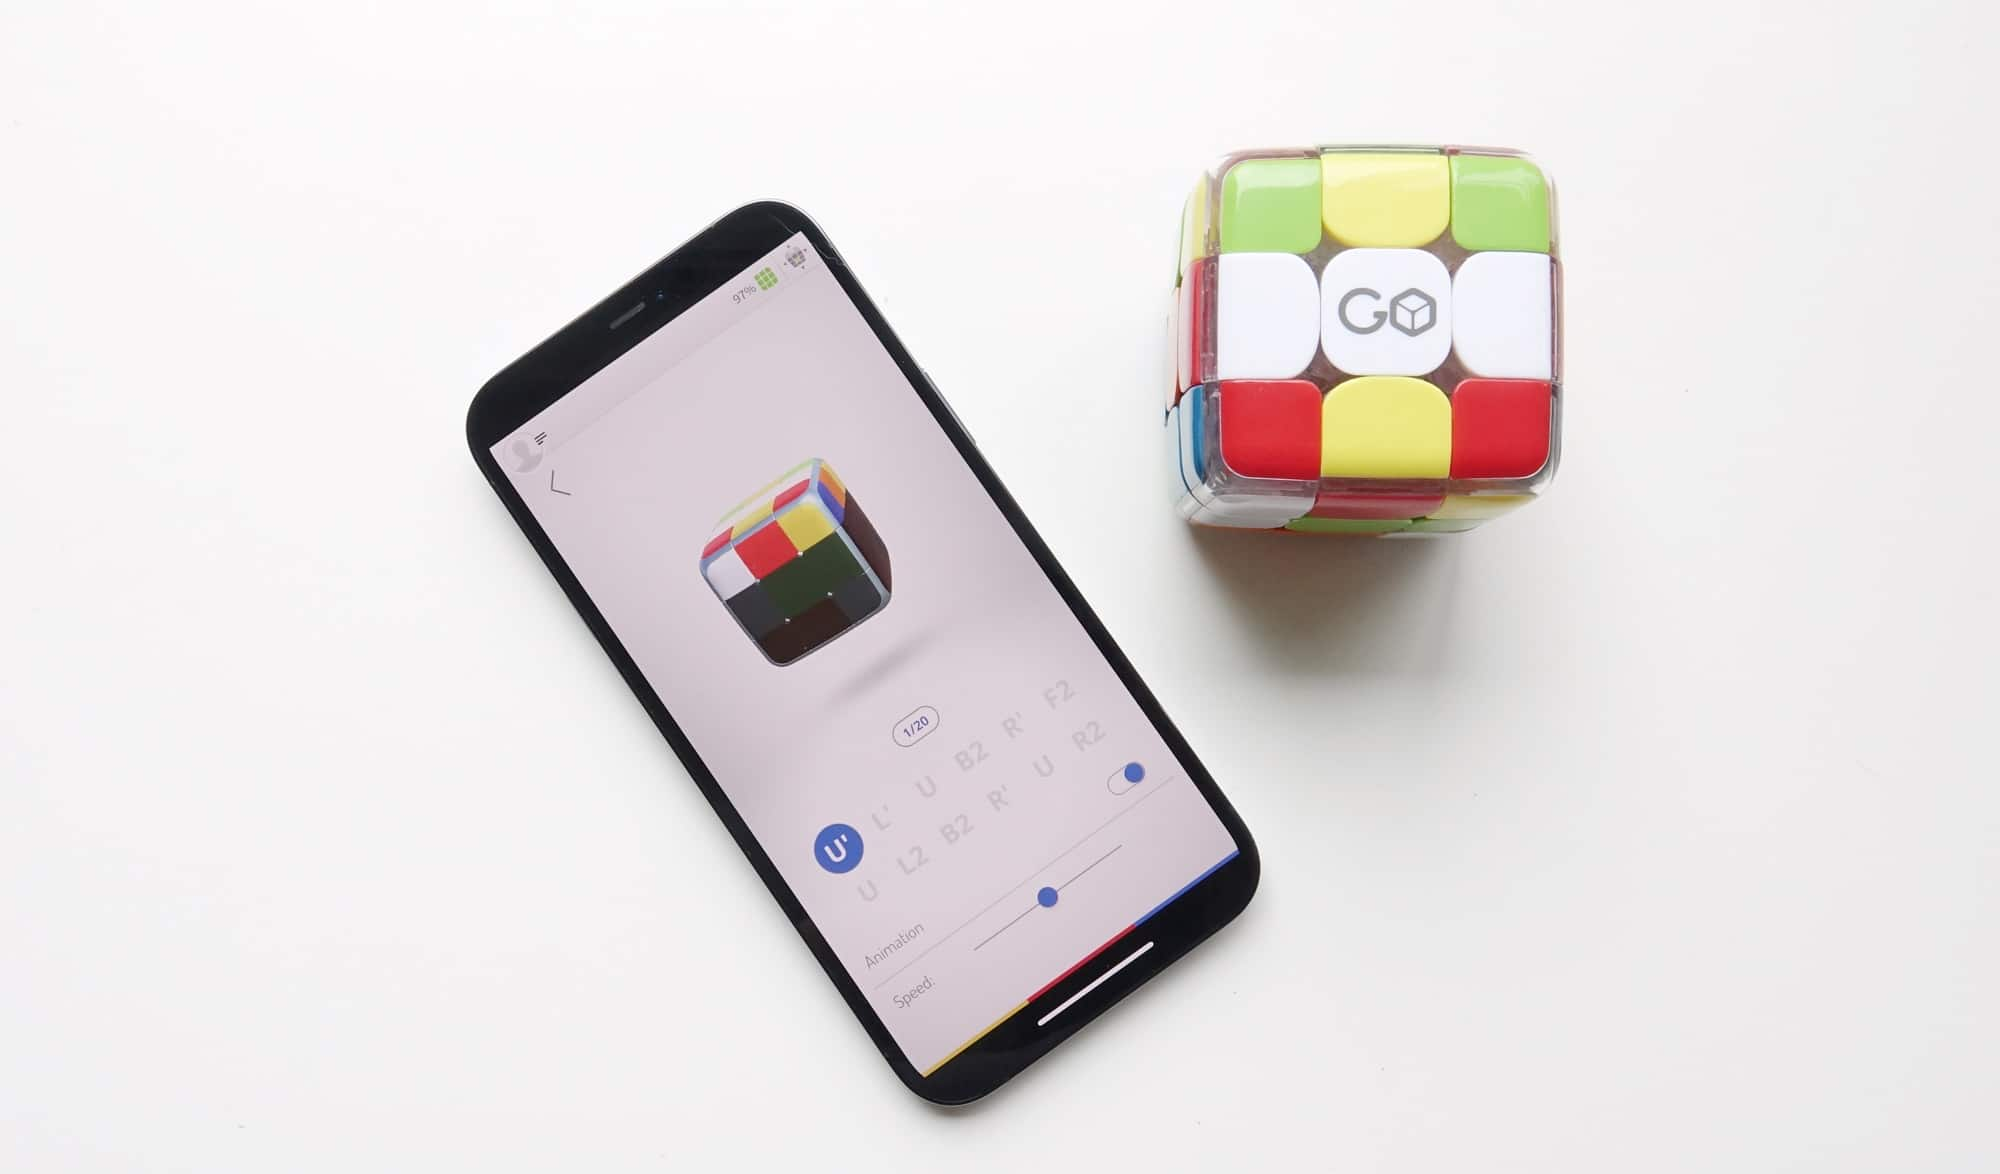 Solving the Rubik's Cube with the GoCube